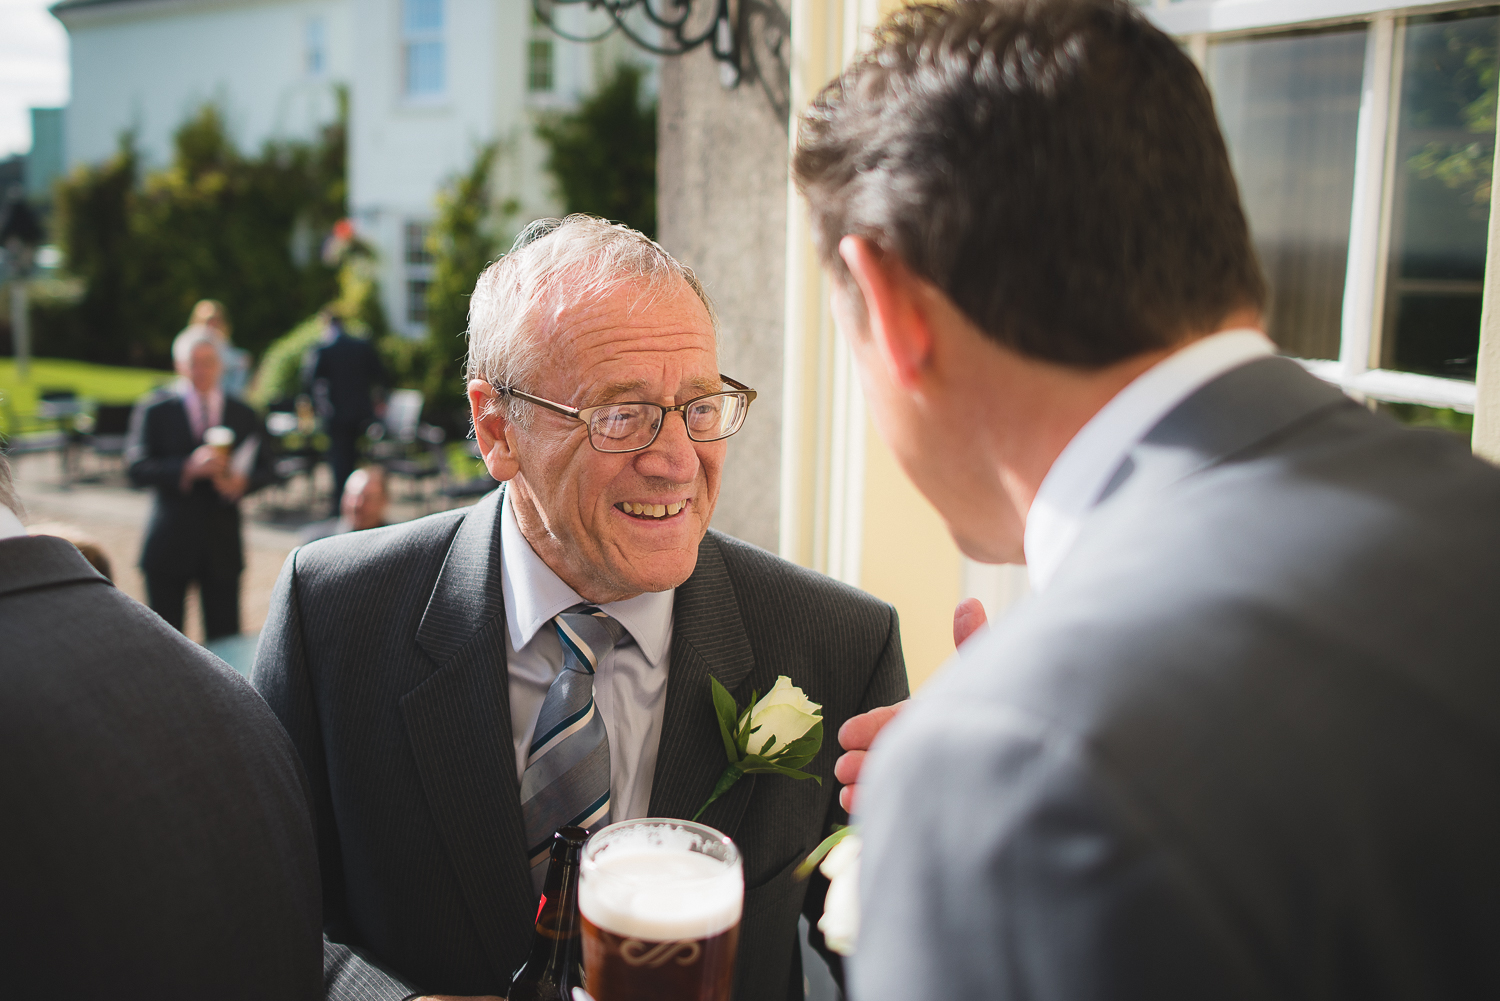 cardiff-wedding-photographer-new-house-country-hotel-south-wales-18.jpg